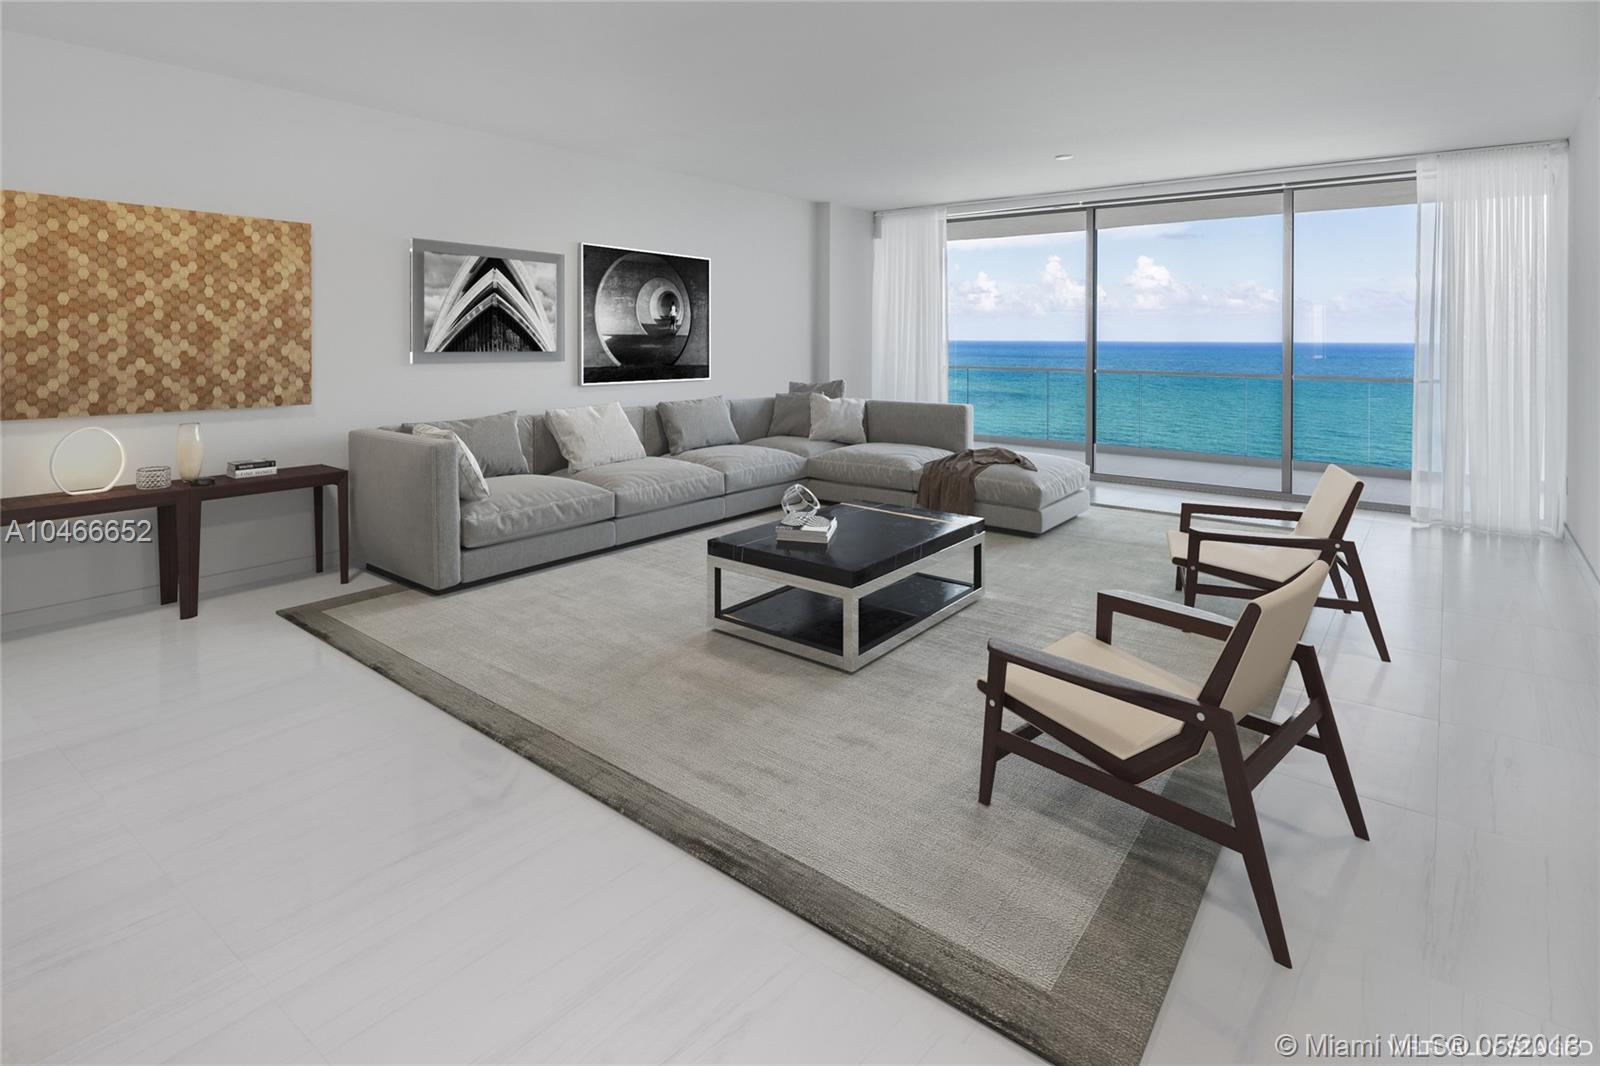 Be the first to live in the spectacular flow through unit with breathtaking ocean and city views! The unit offers 3,592 sqft, 3 bedrooms, 4 bathrooms, separate maids quarters and 745 sqft of terrace. Top of the line Gaggenau appliances, window treatments, and white Calacatta marble thought out the apartment. This is an unparalleled and stunning oceanfront high rise in a five star residence with resort-style amenities. Amenities included: 24 hour concierge, poolside restaurant under Starr catering, tennis courts and world-class spa. You don't want to miss this!